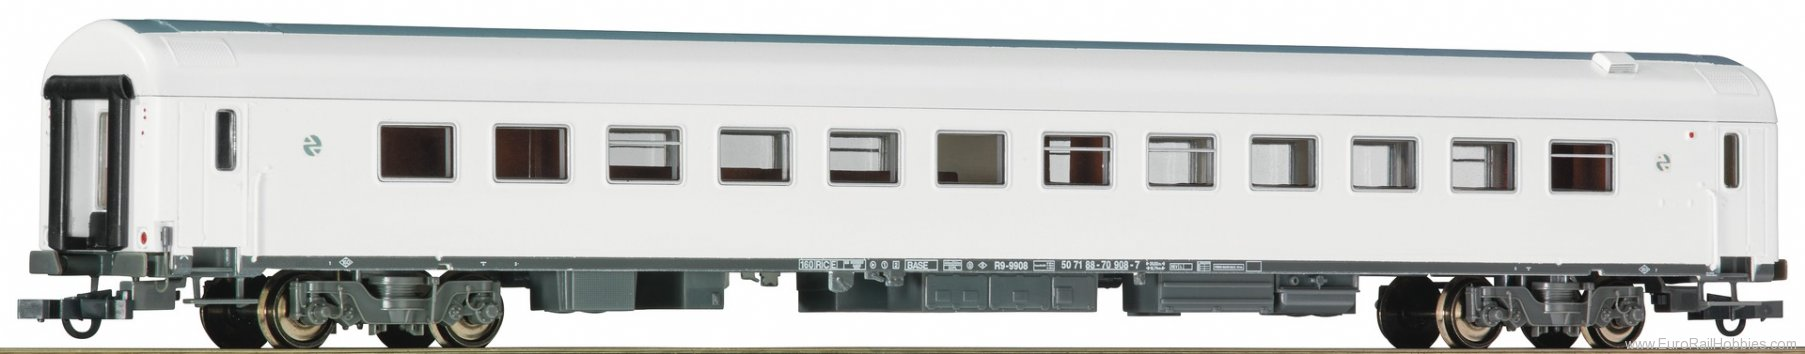 Roco 64609 Dining car, RENFE